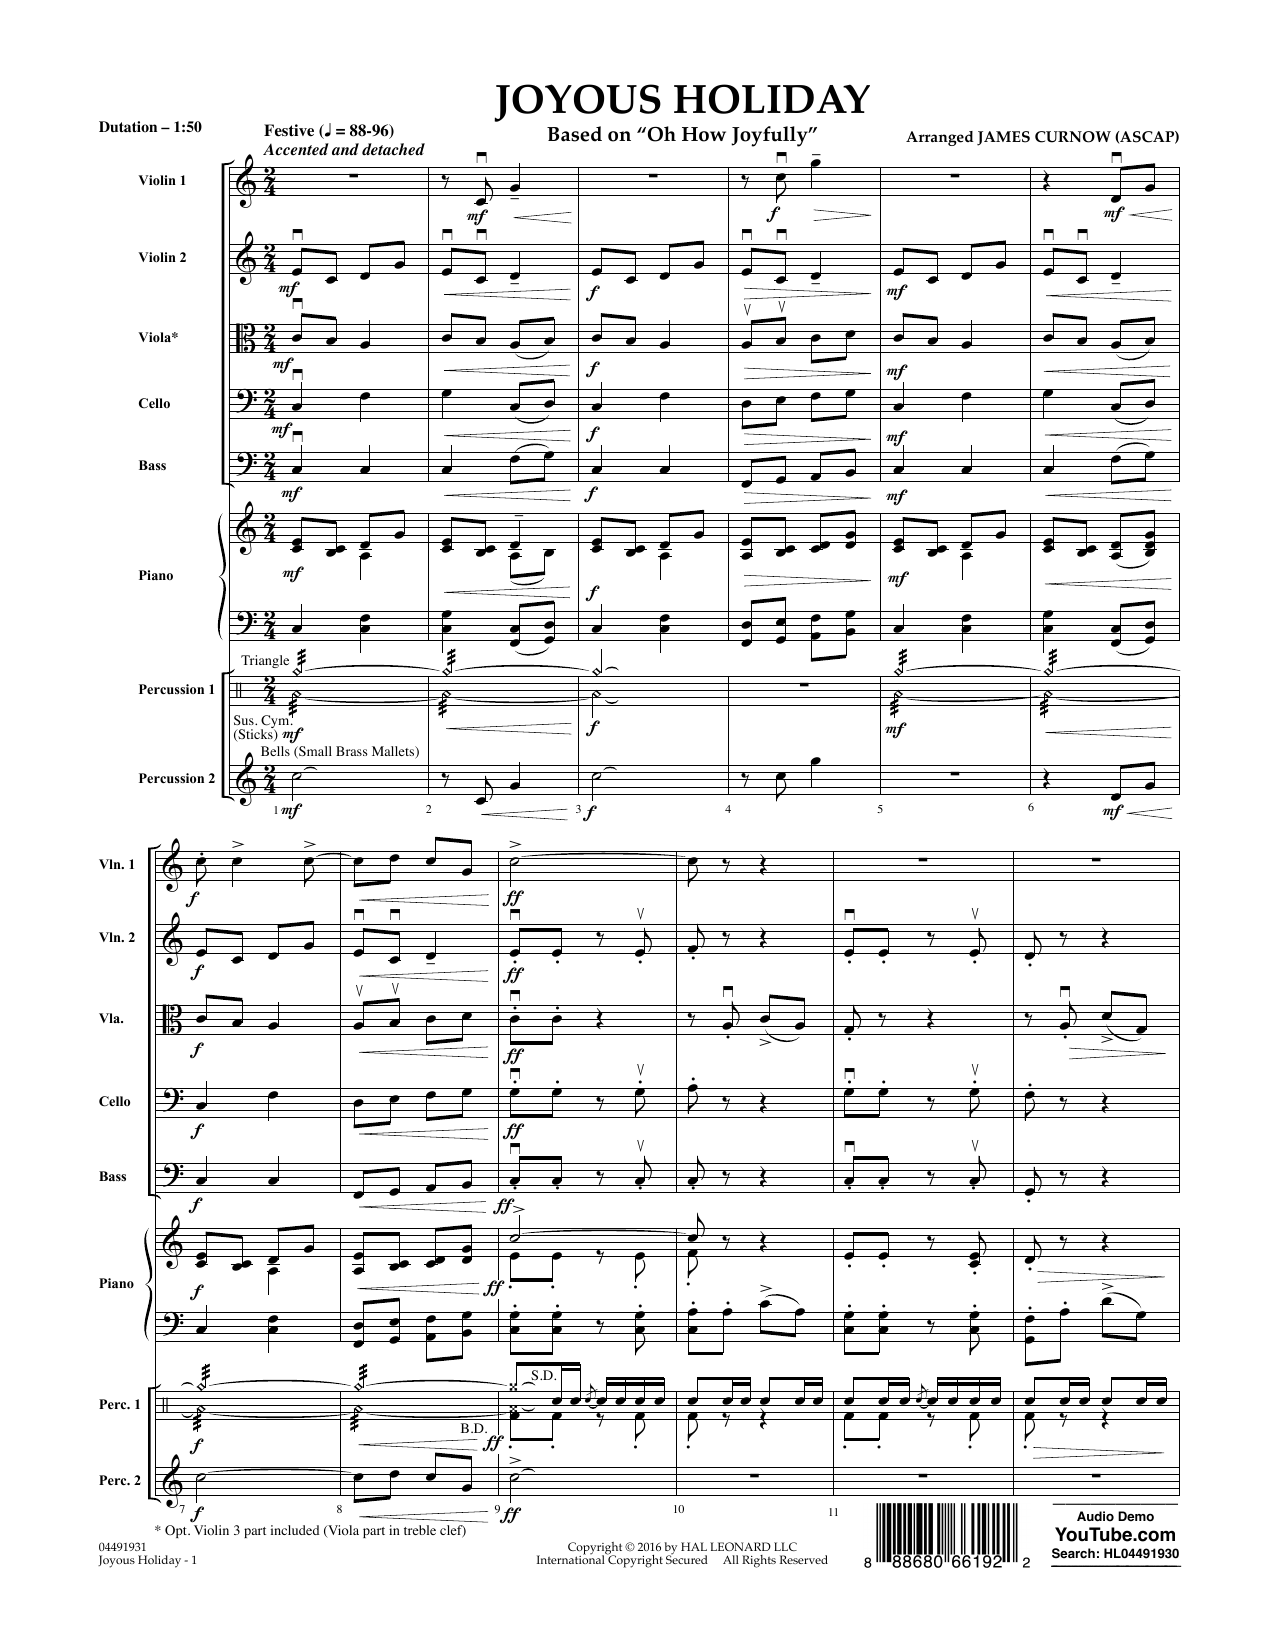 Joyous Holiday (based on Oh How Joyfully) - Conductor Score (Full Score)